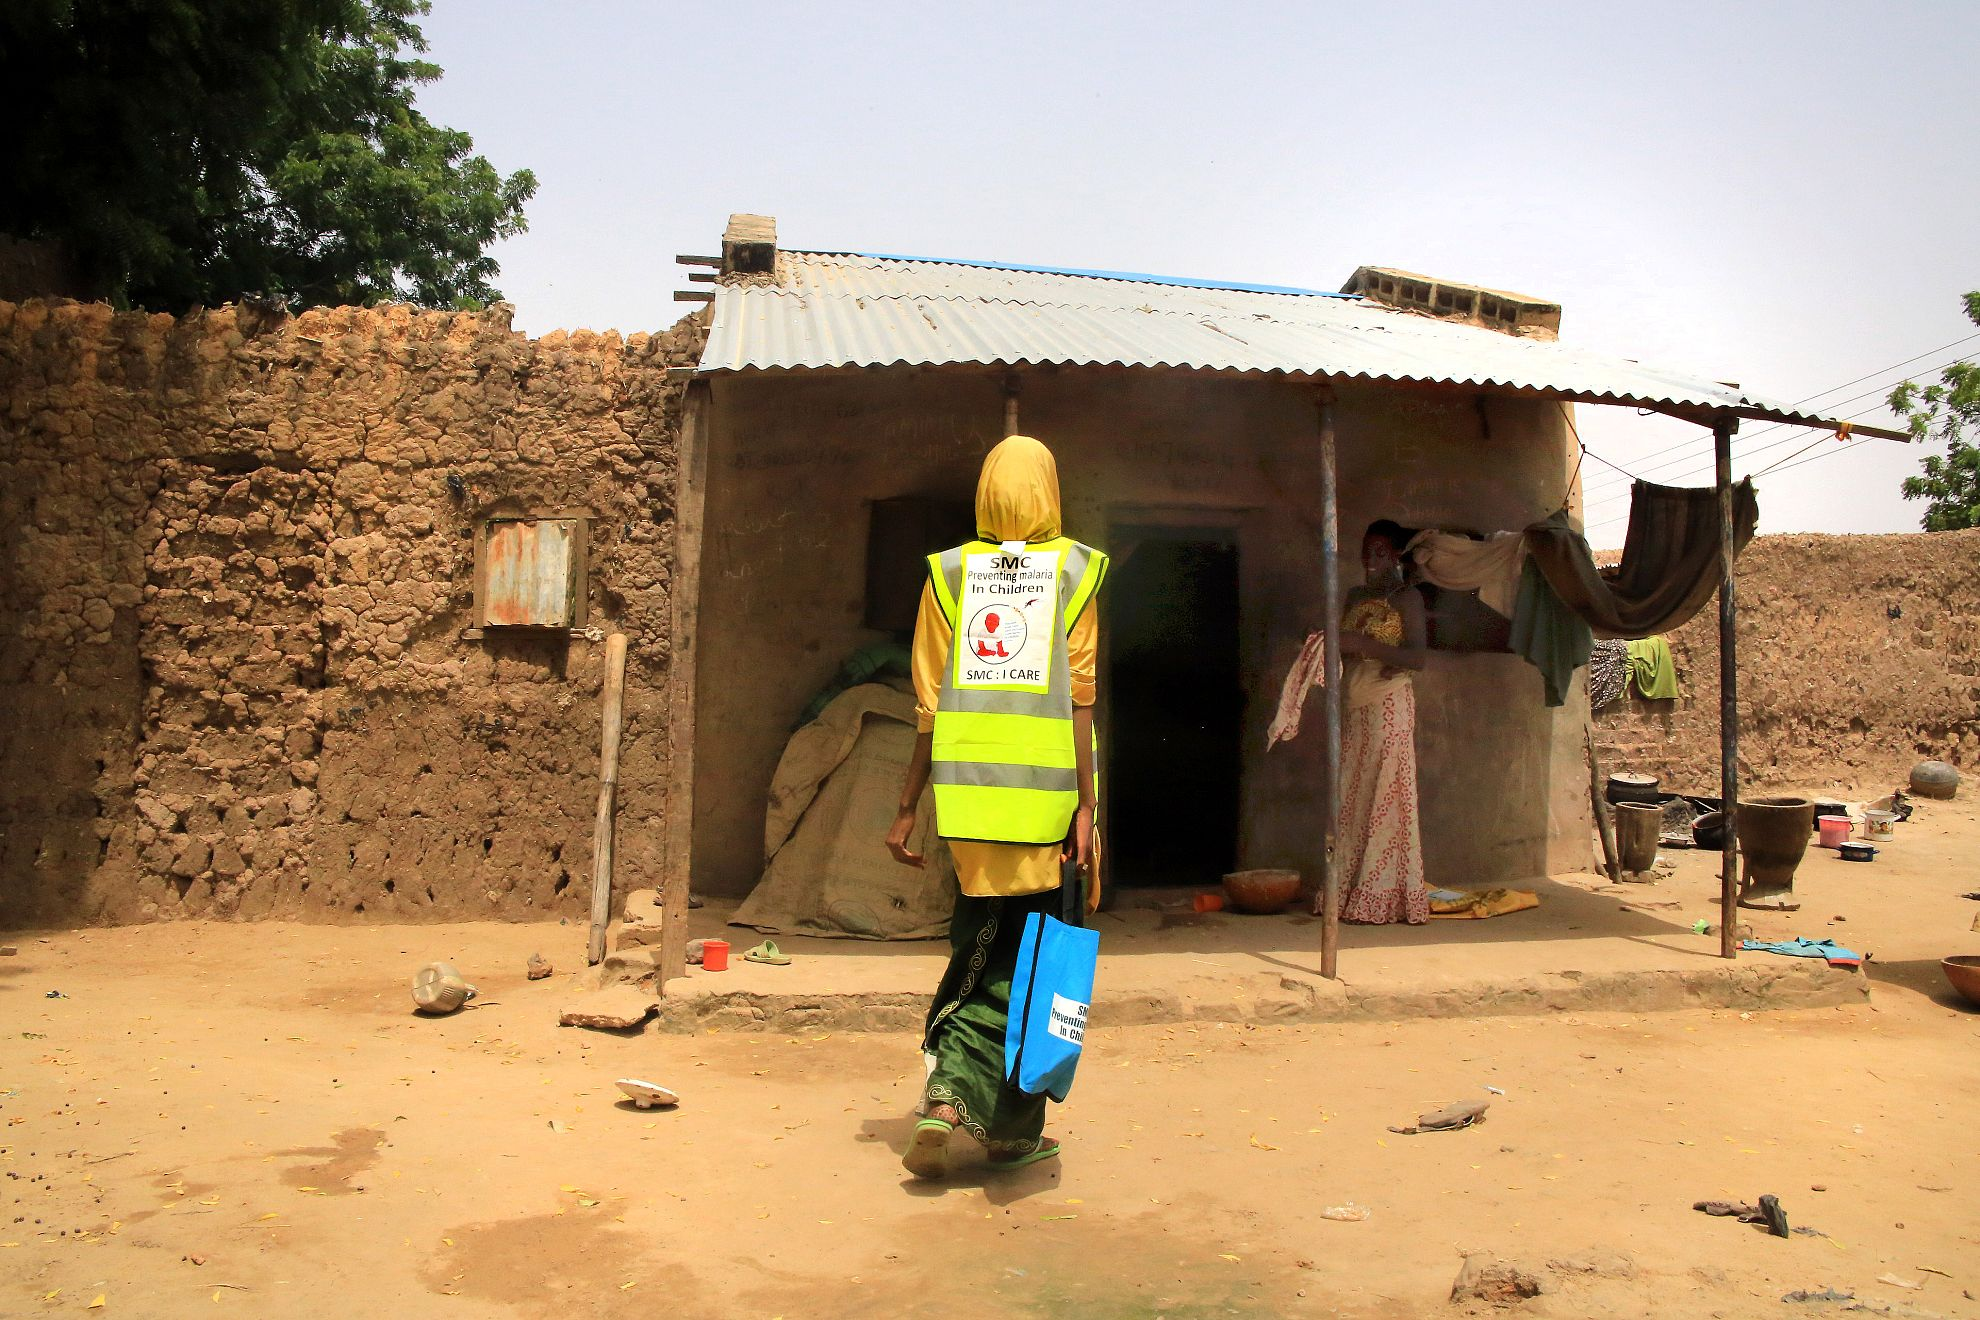 Latest News Bringing smc to your door adapting mass drug distribution methods to the needs of the community in niger